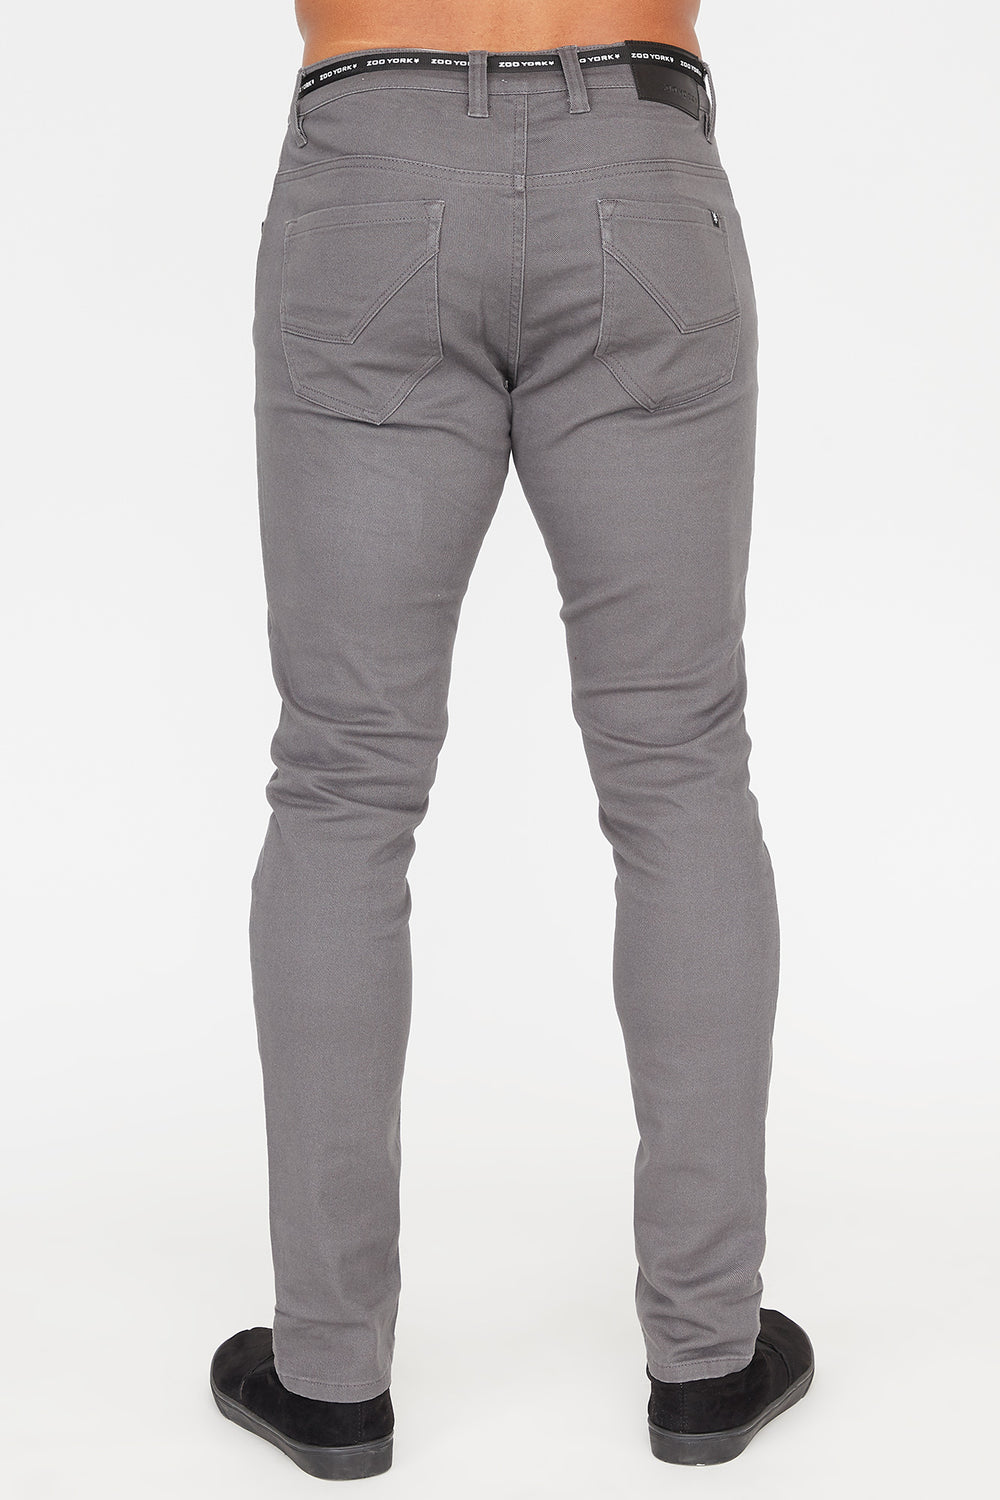 Zoo York Mens Skinny Jeans Heather Grey